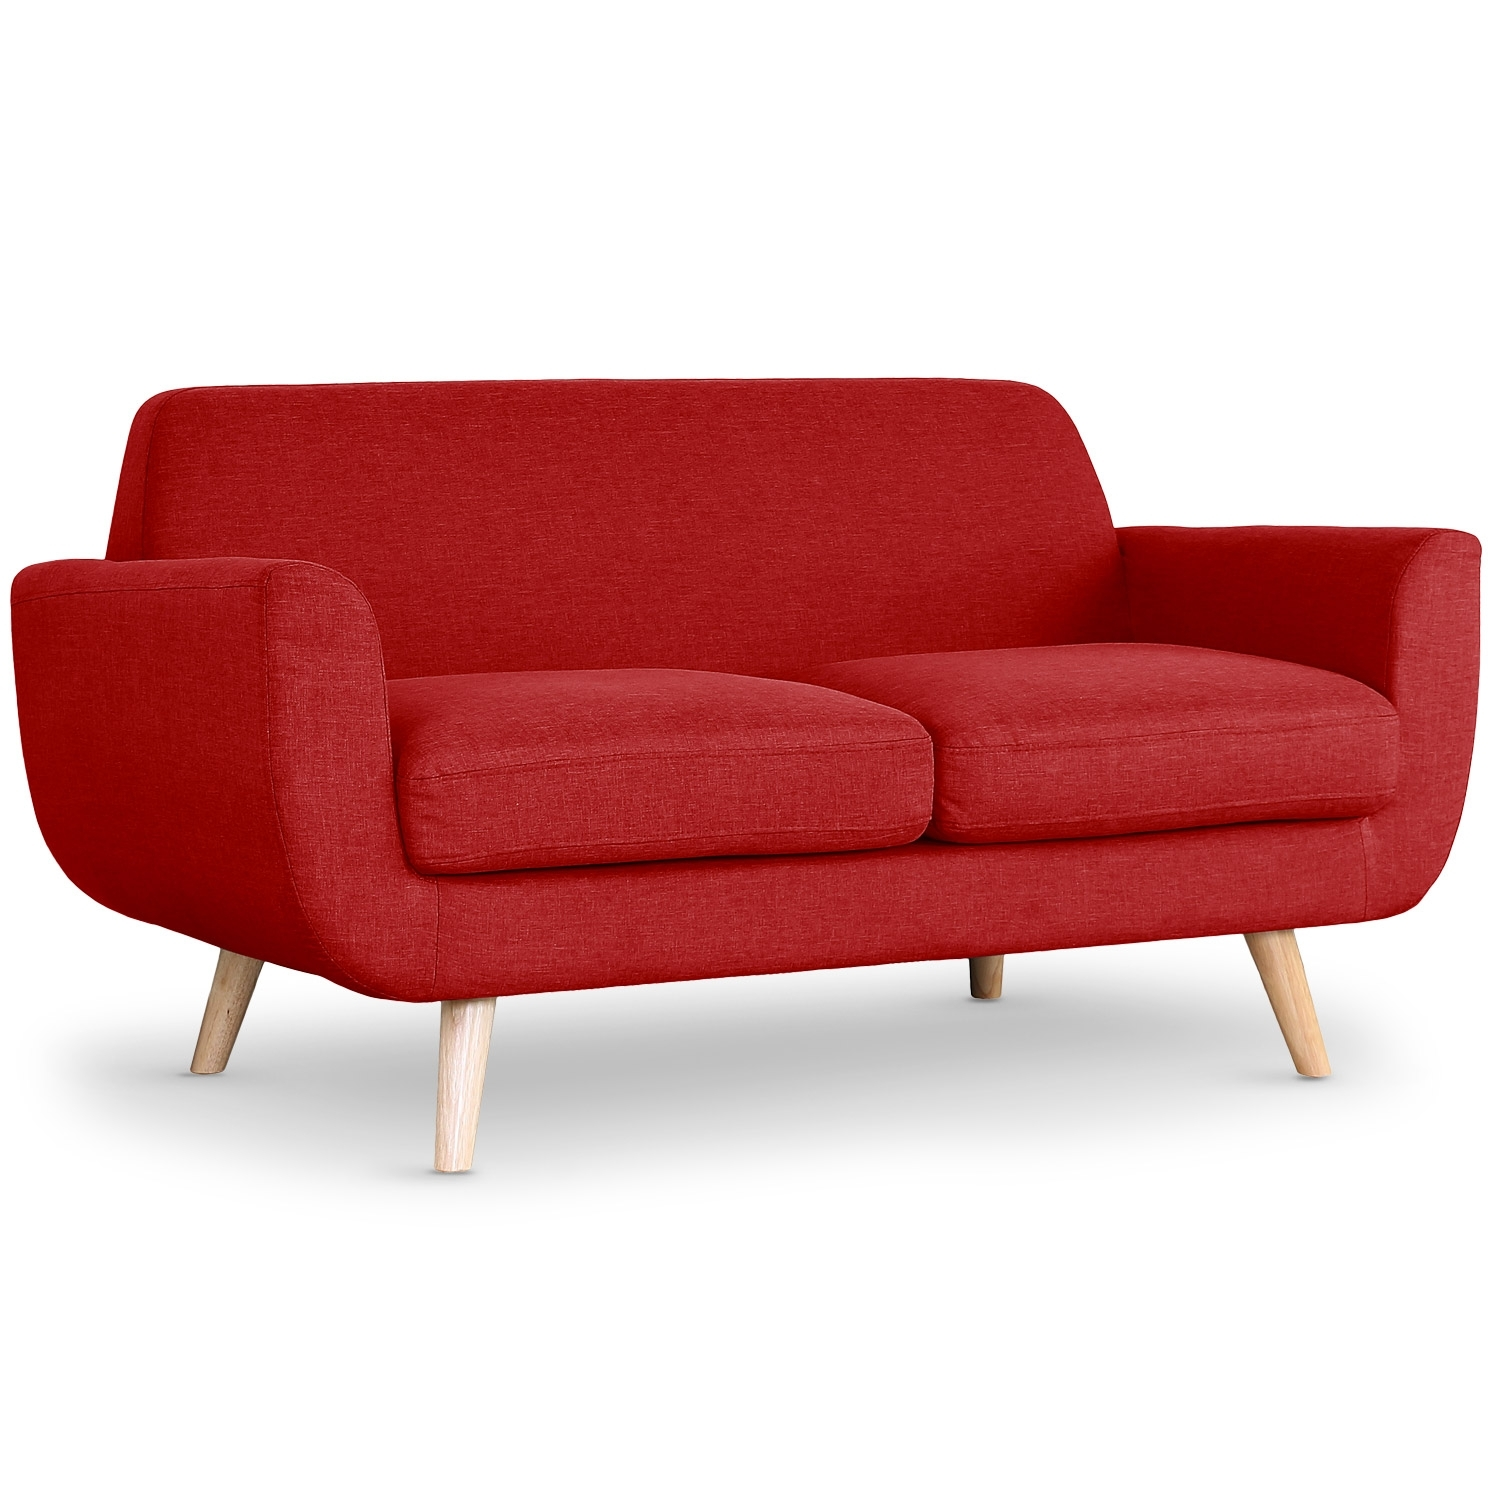 Canap scandinave 2 places tissu rouge - Canape rouge 2 places ...